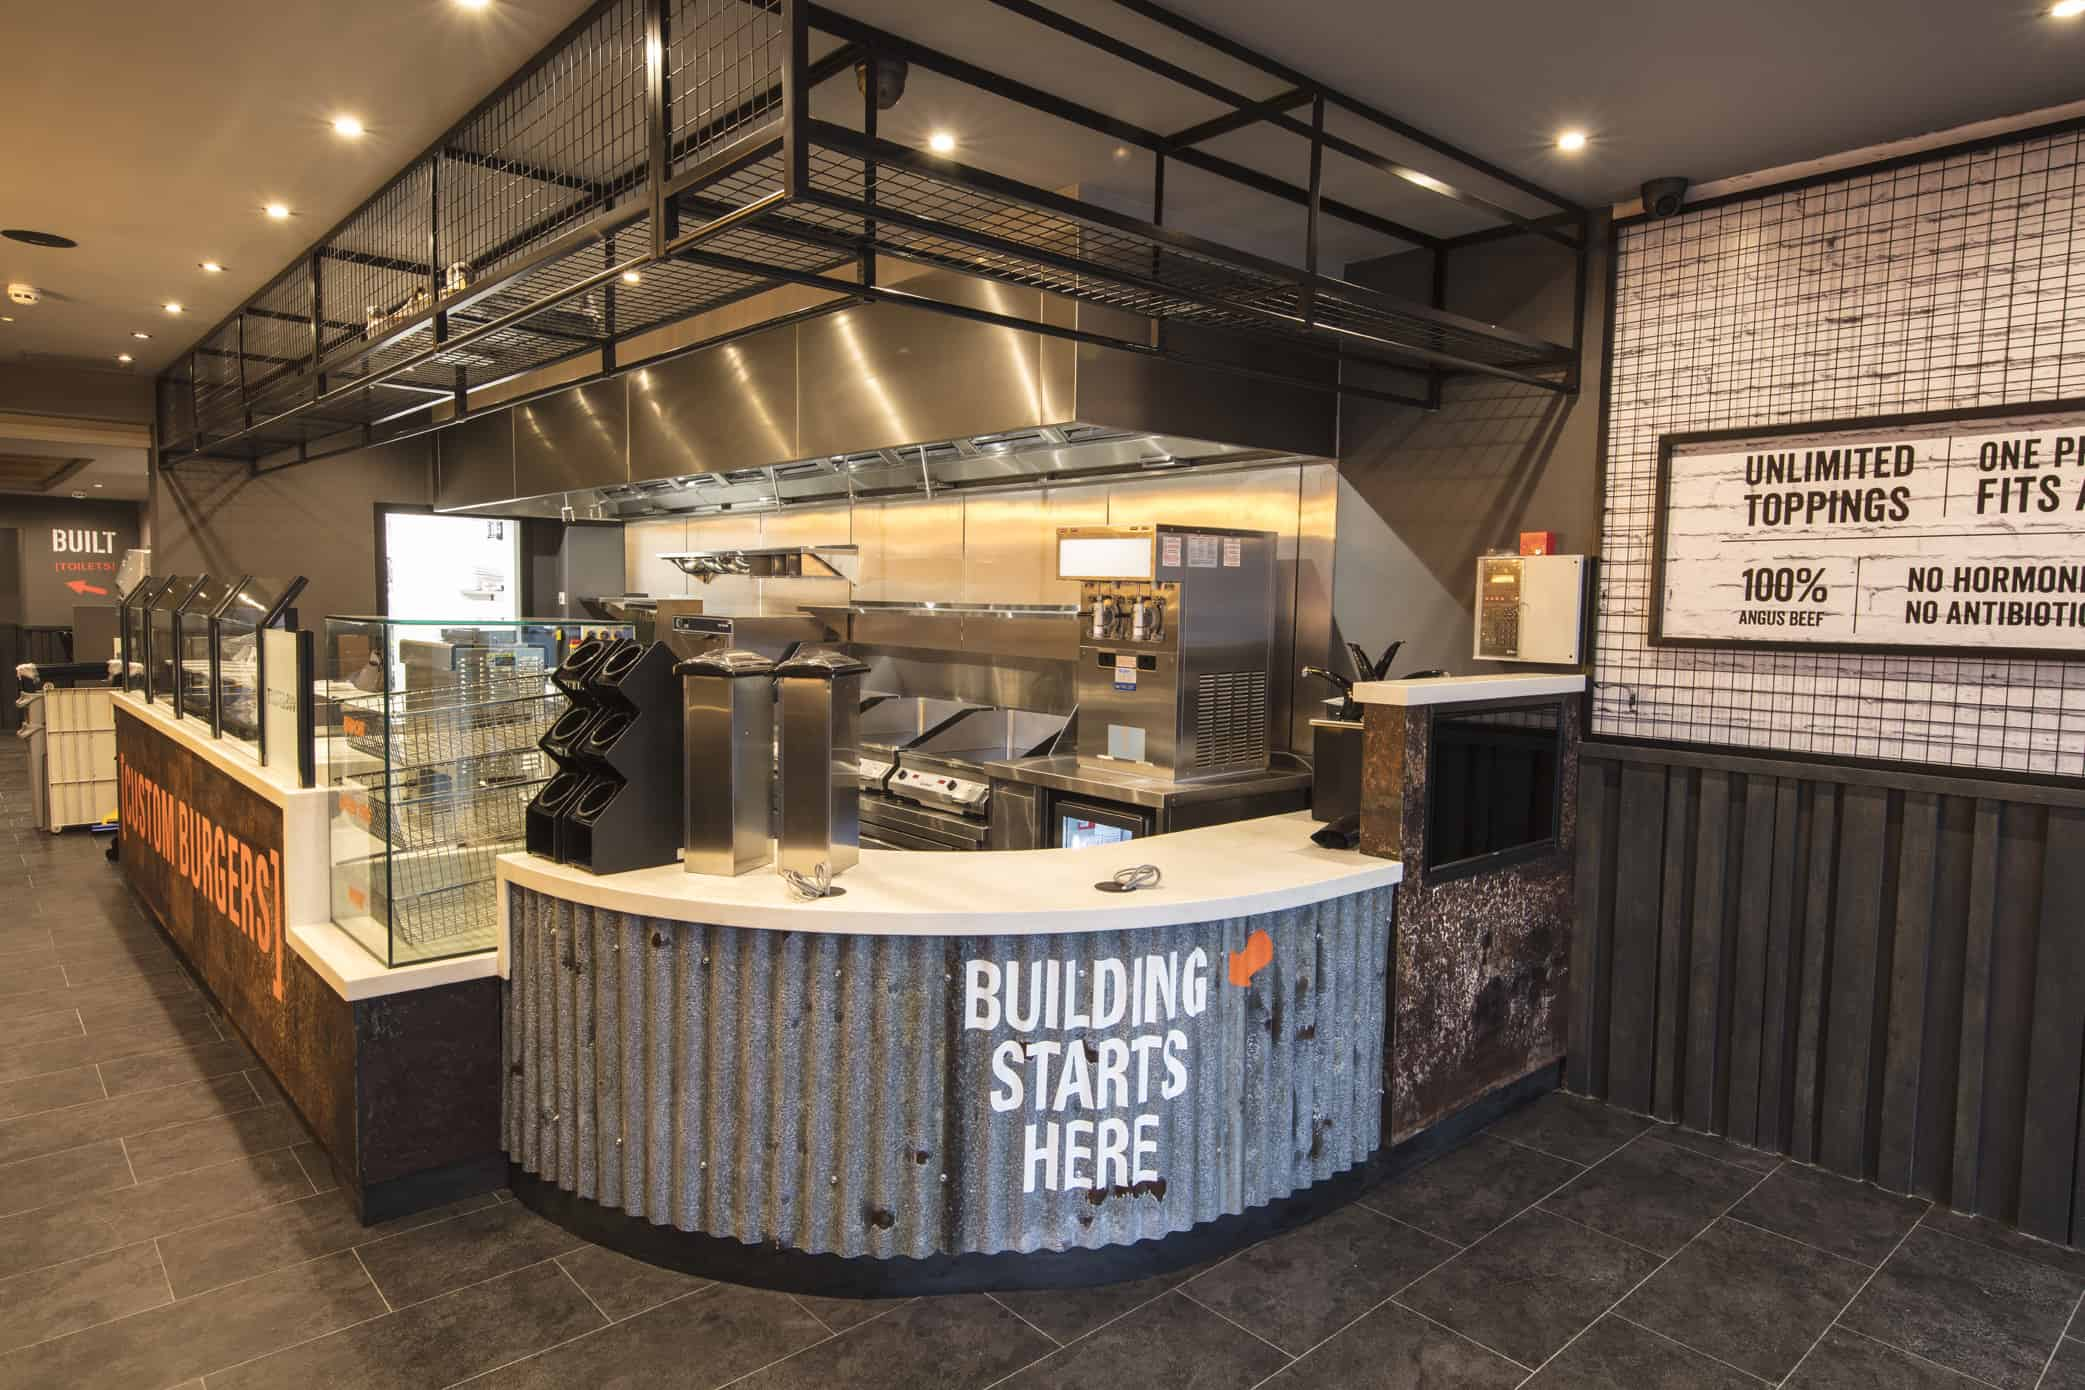 Built Custom Burger Launches First UK Site